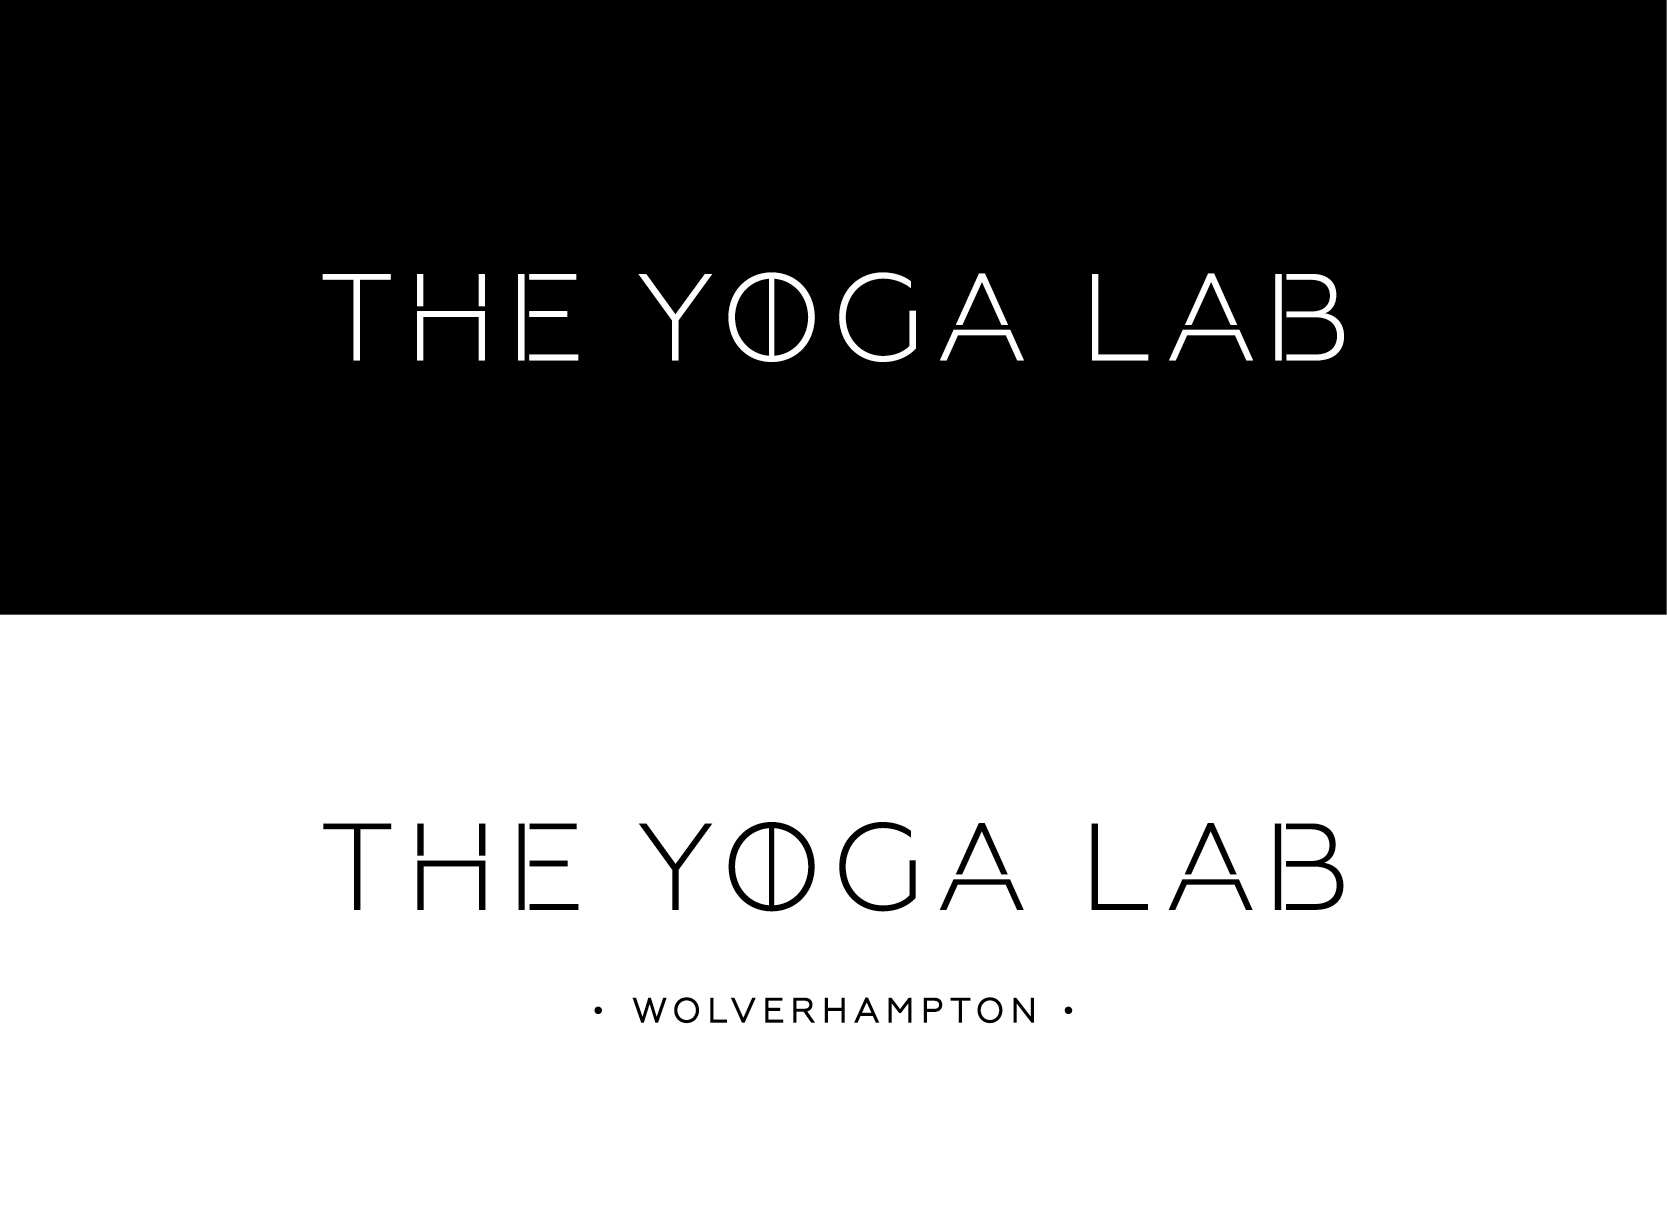 The Yoga Lab logo design